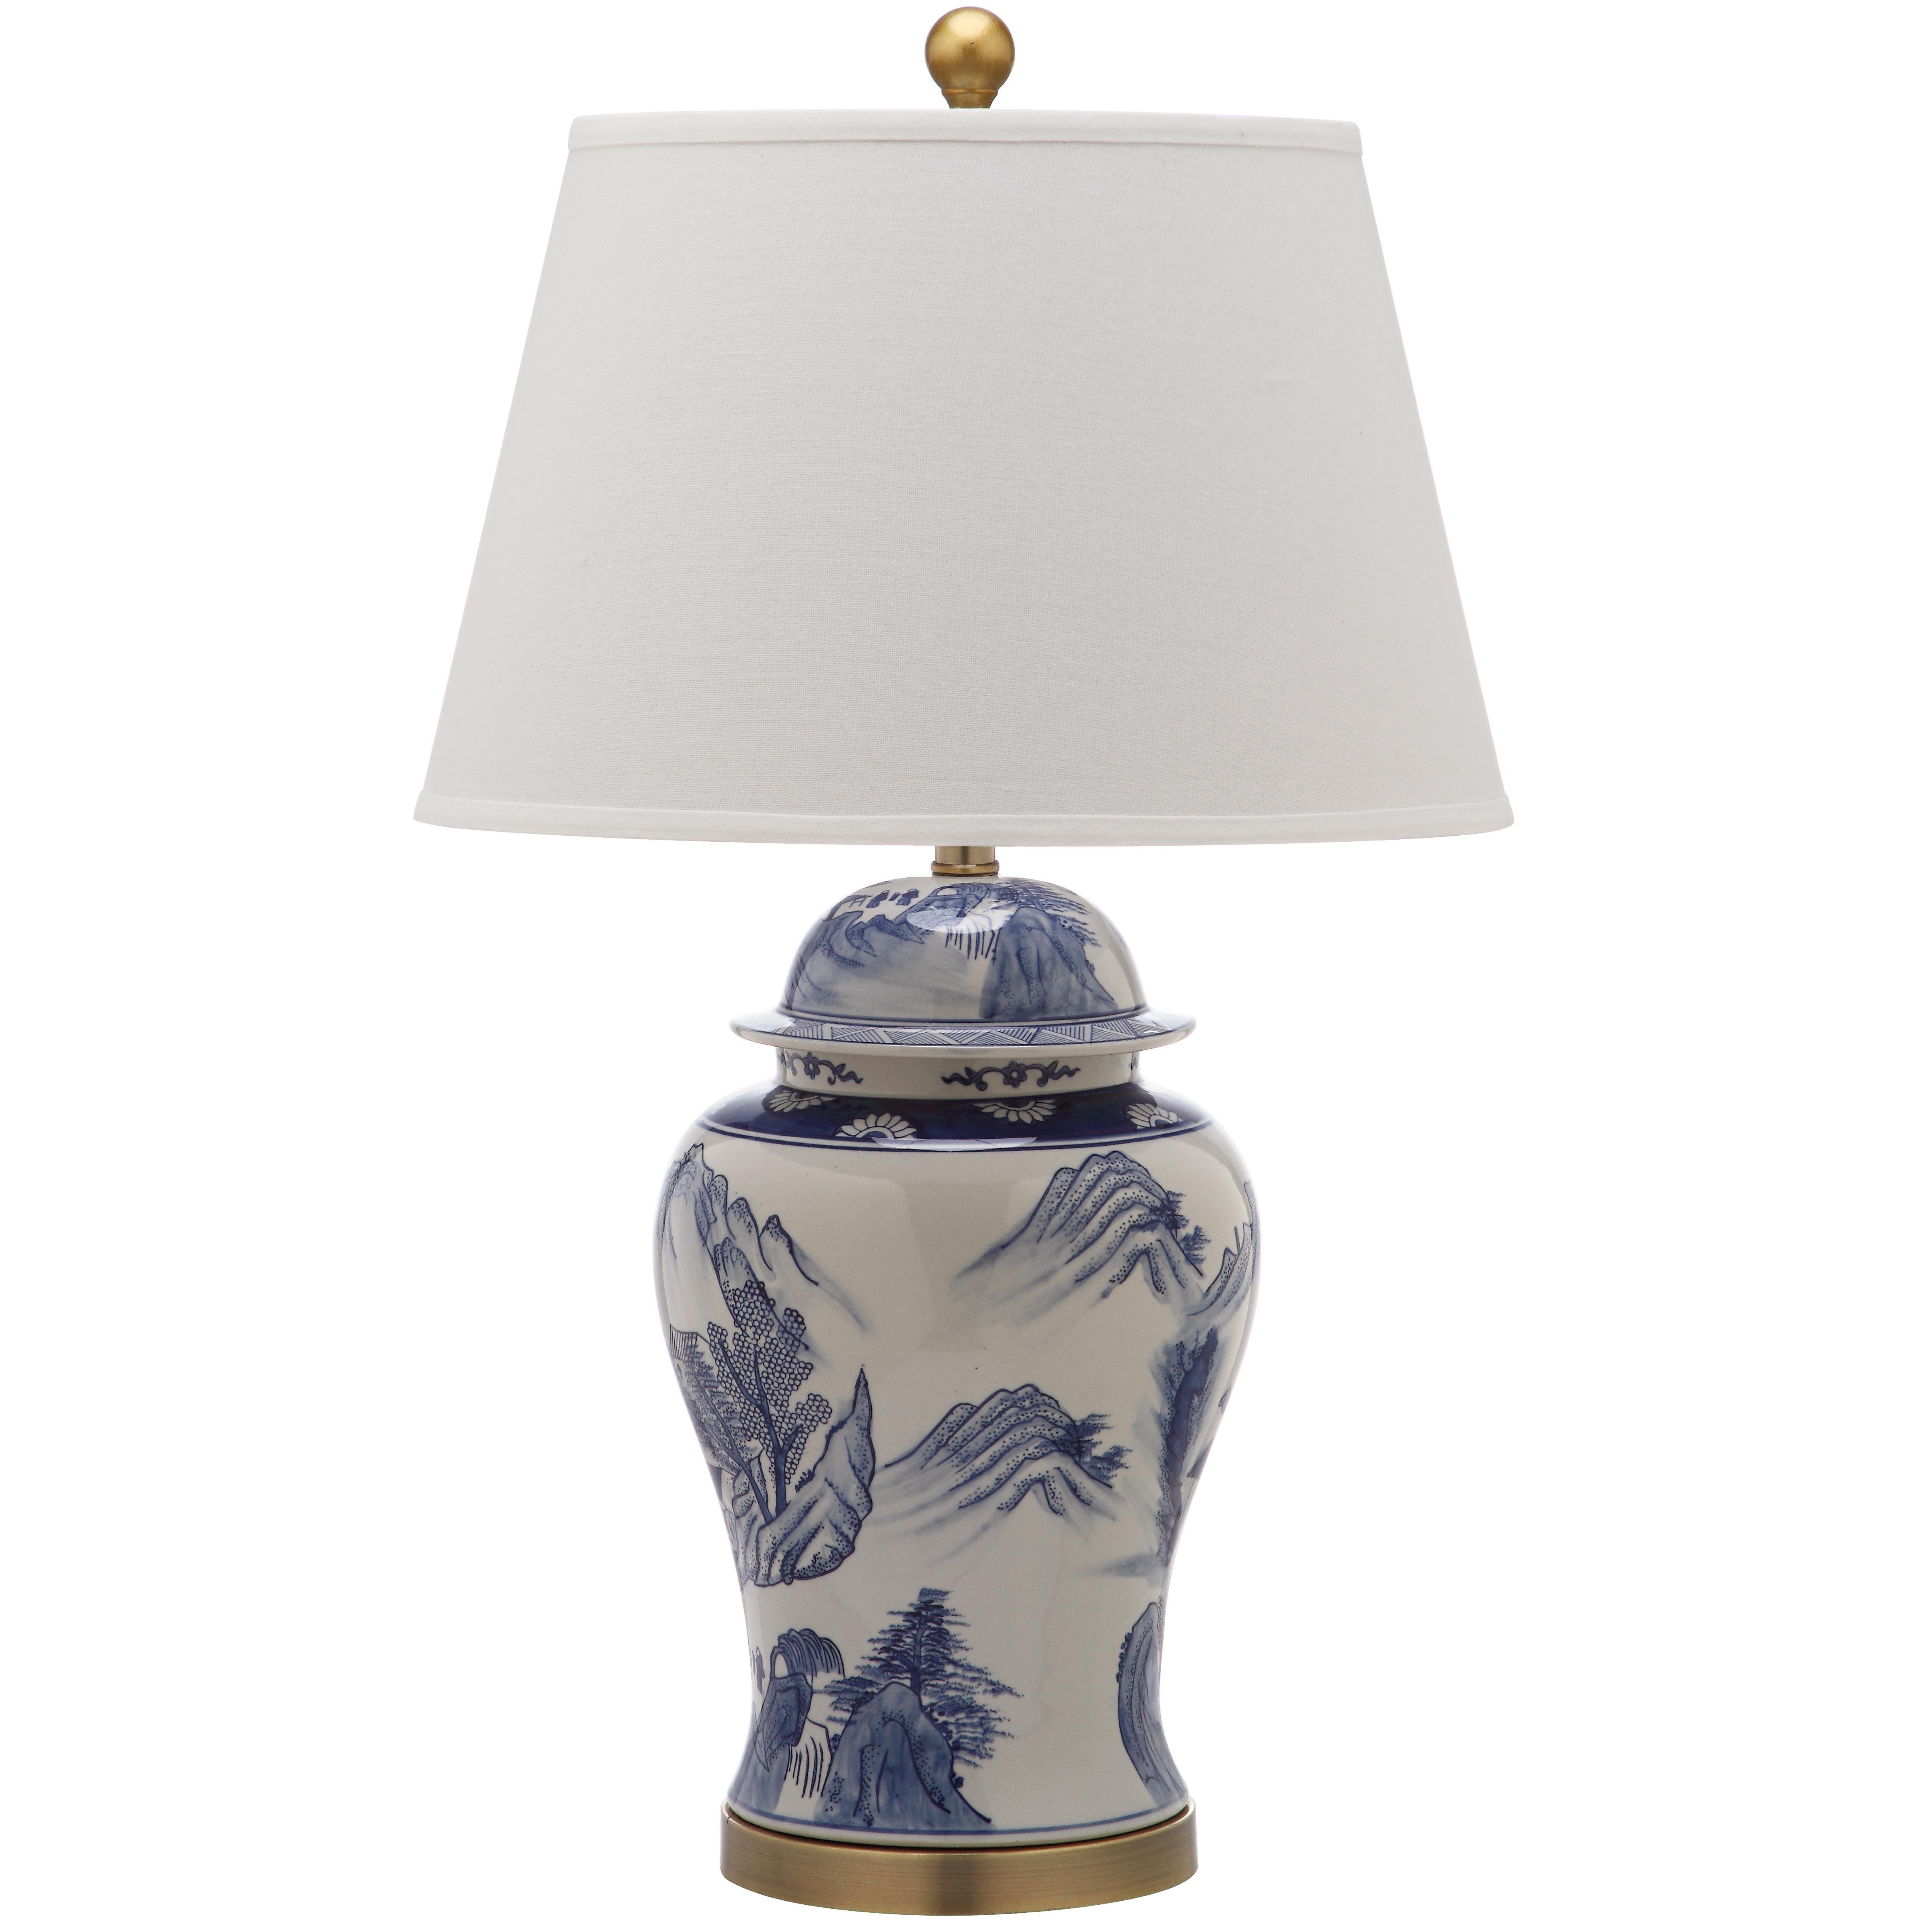 safavieh shanghai ginger jar 29 h table lamp with empire shade. Black Bedroom Furniture Sets. Home Design Ideas